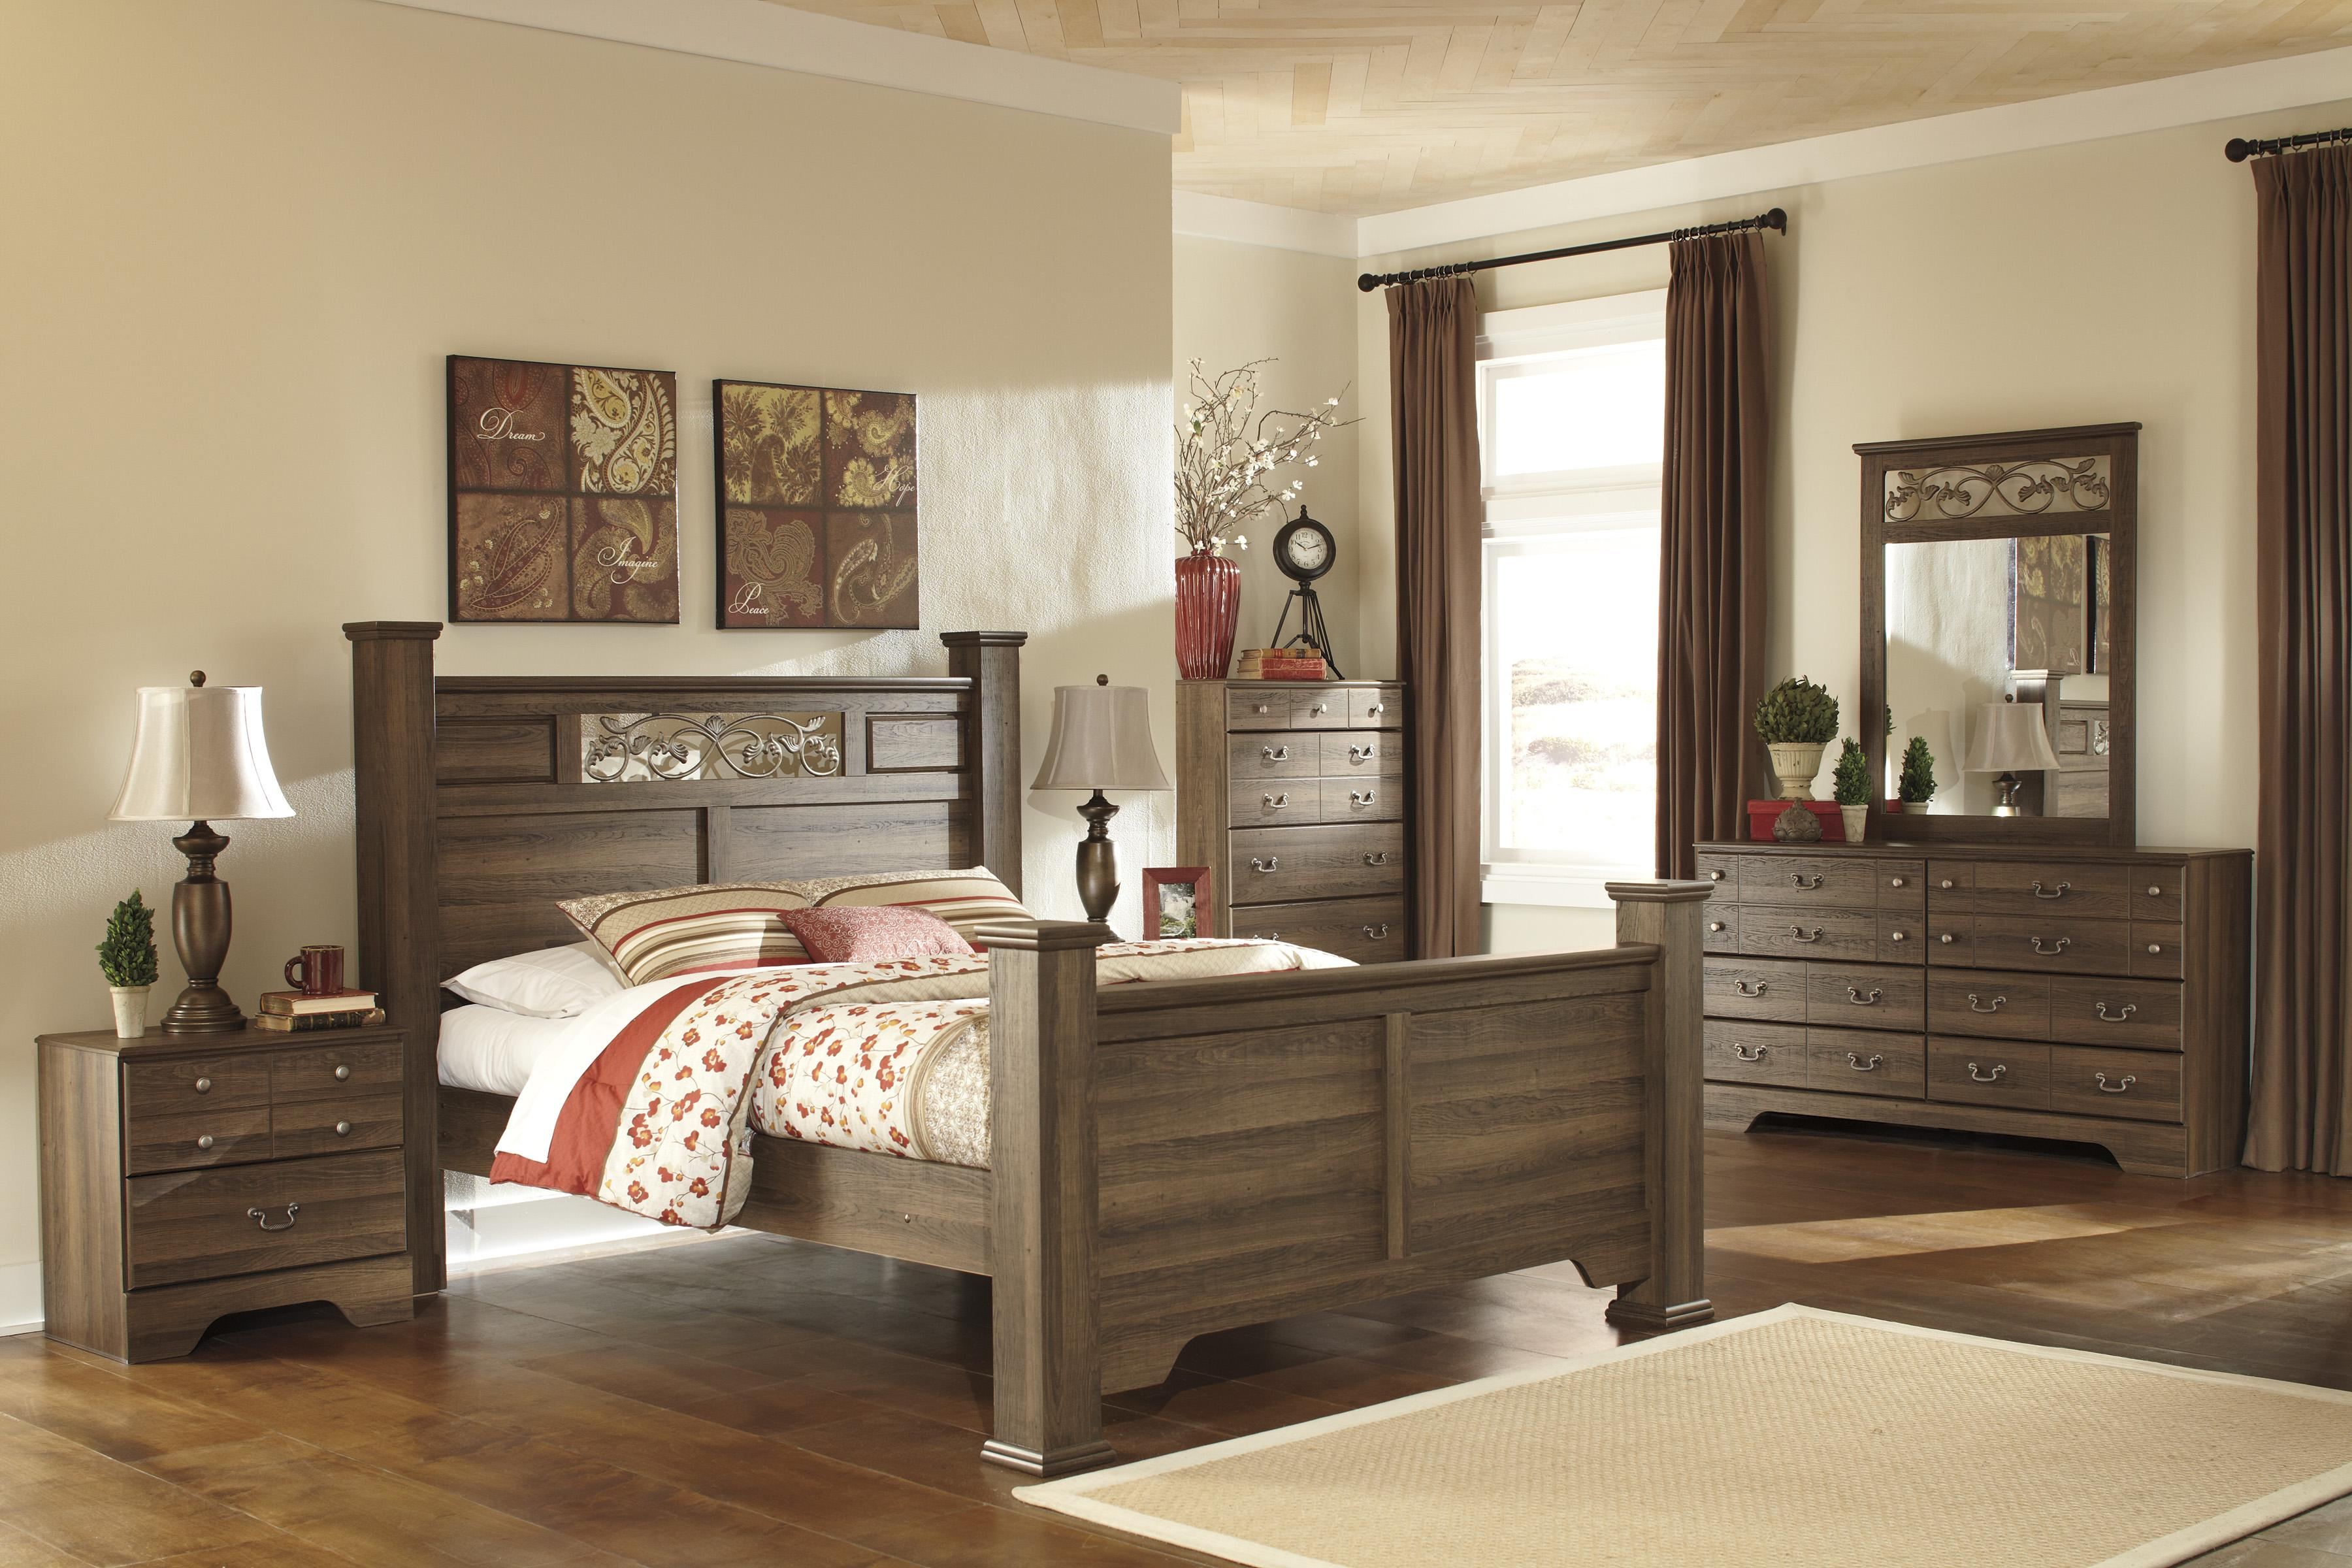 Signature Design by Ashley Allymore Queen Bedroom Group - Item Number: B216 Q Bedroom Group 3